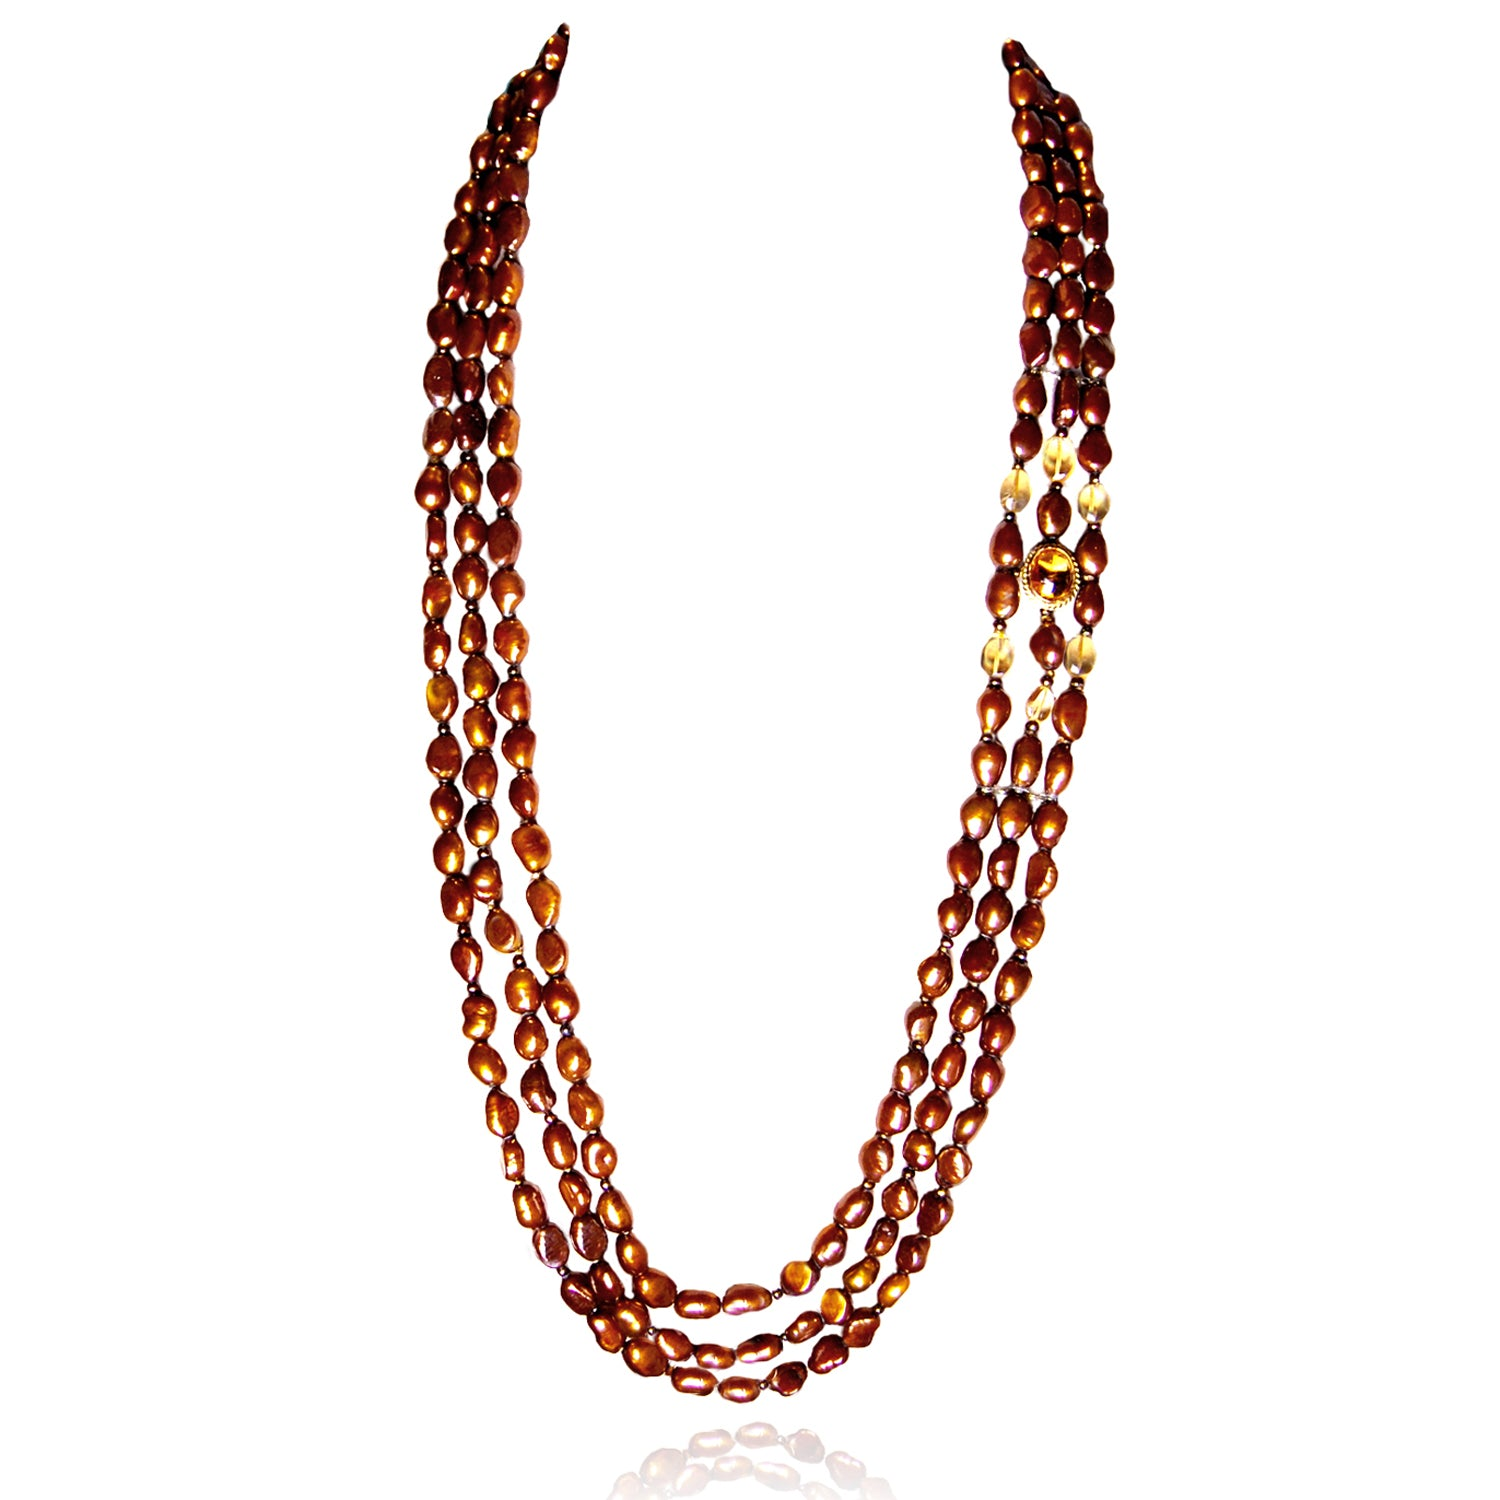 It's a Long Story 3 Strand Necklace With Citrine Statement